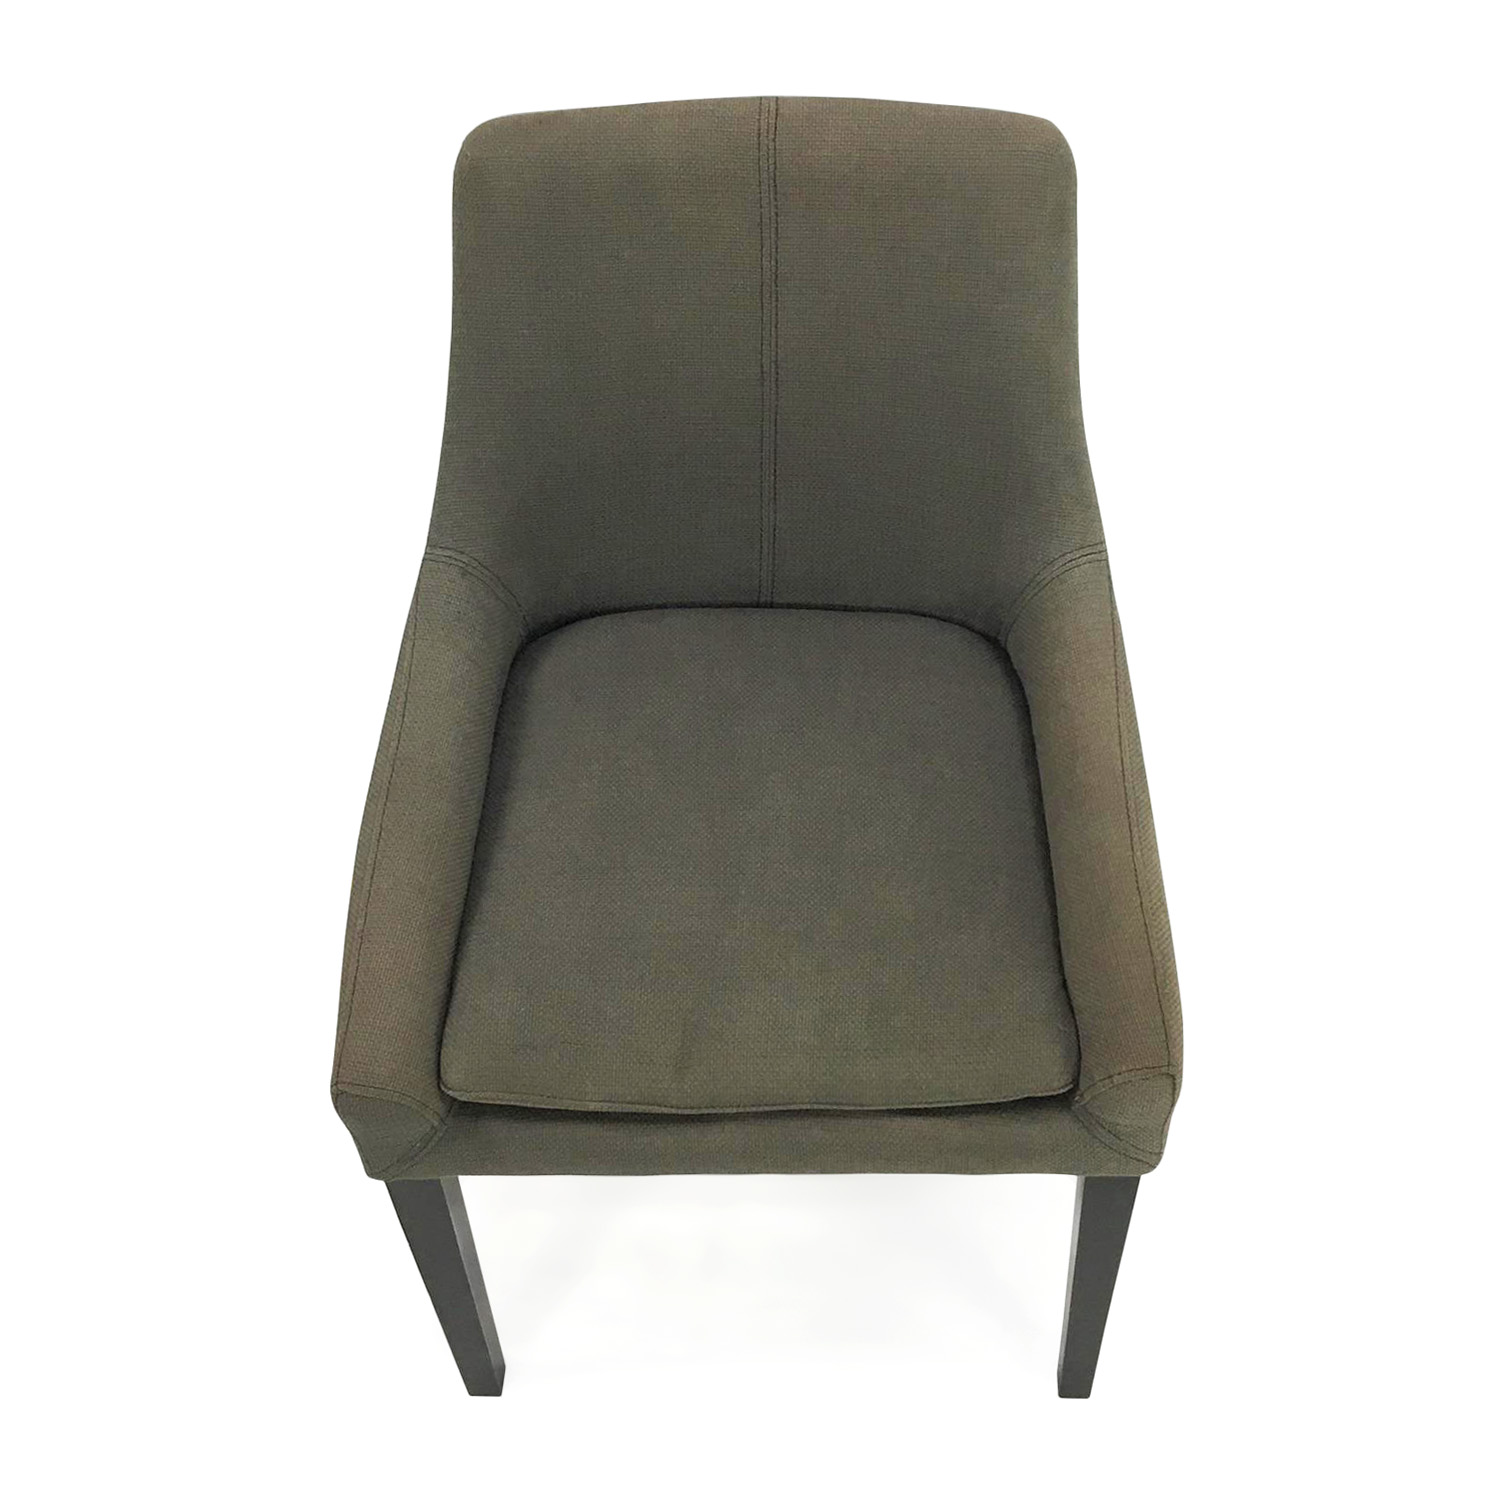 pewter chair back support cushion for office uk blue coupon code